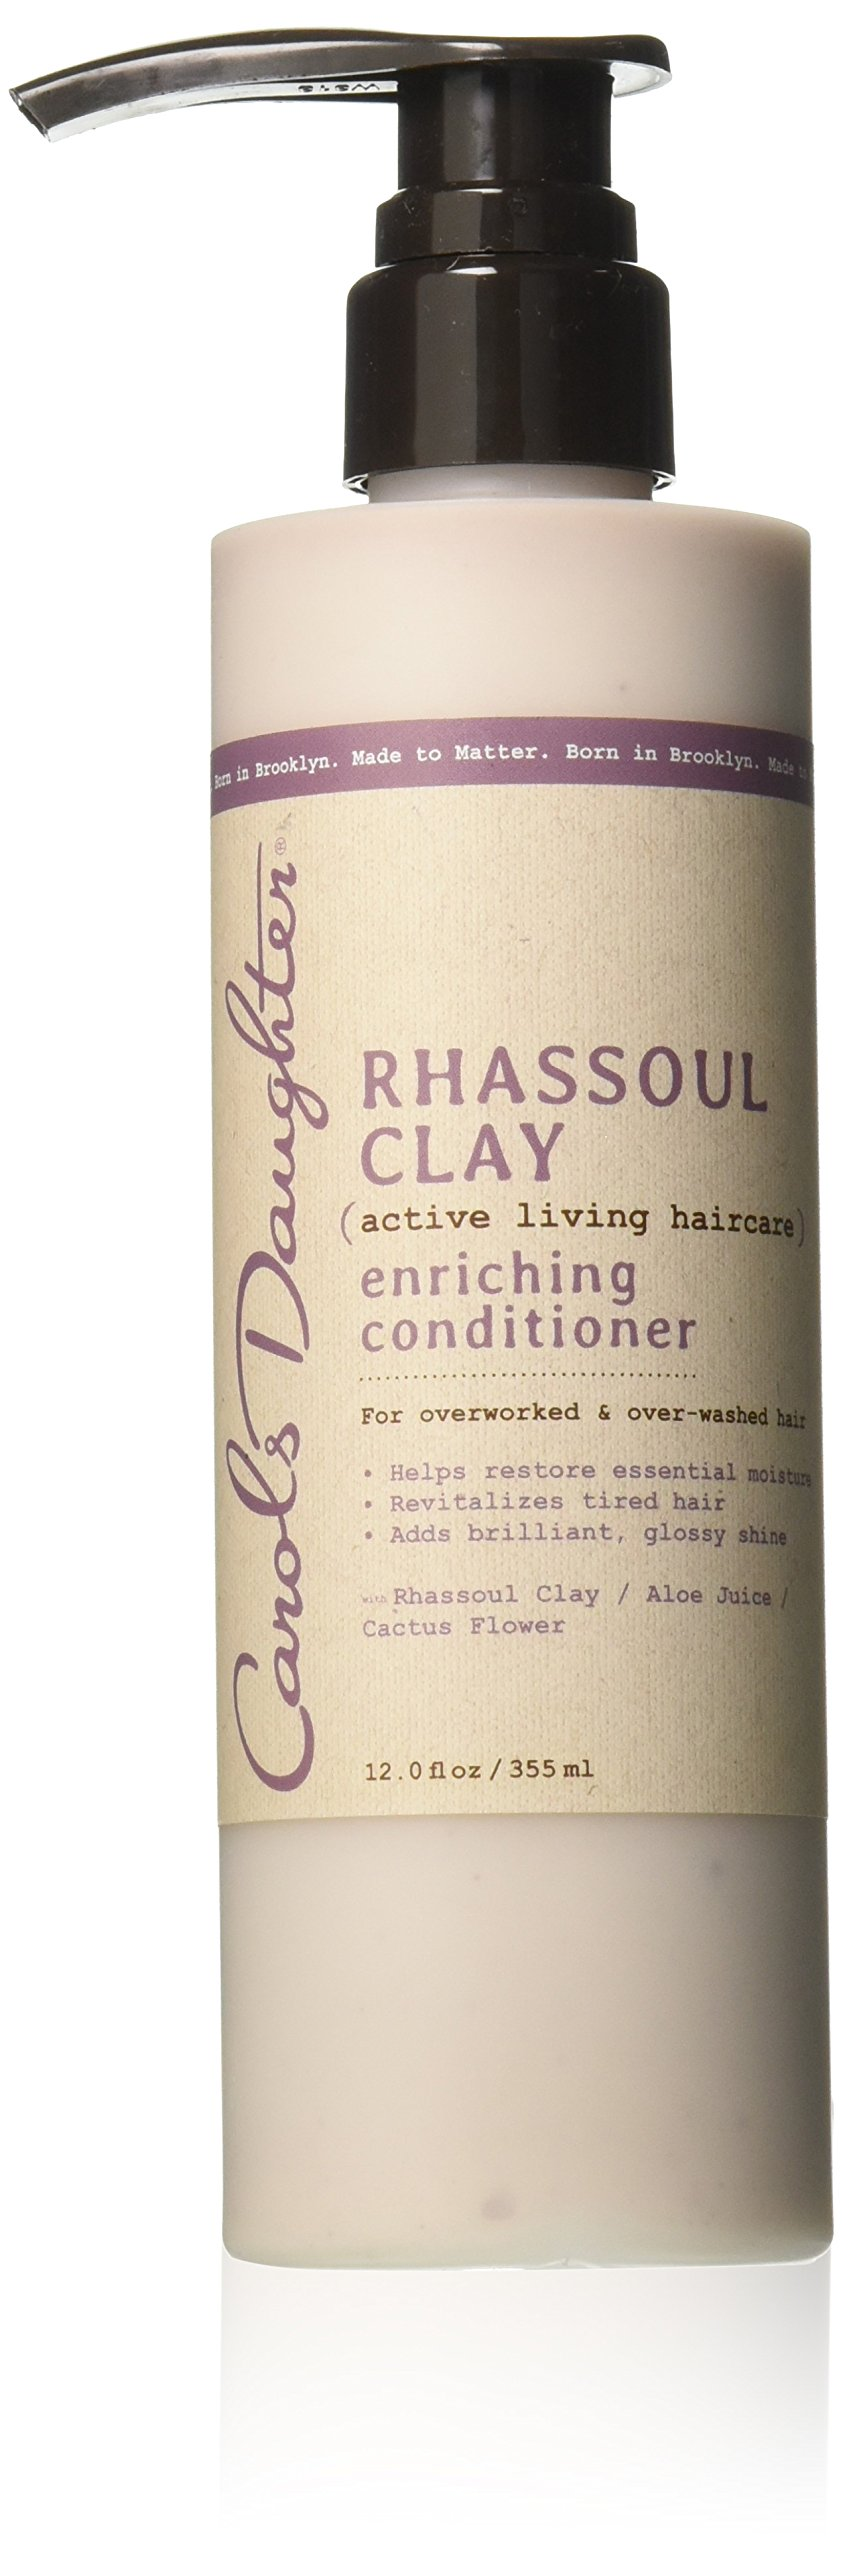 Carol's Daughter Rhassoul Clay Enriching Conditioner, For Overworked & Over-Washed Hair, 12 fl oz (Packaging May Vary)